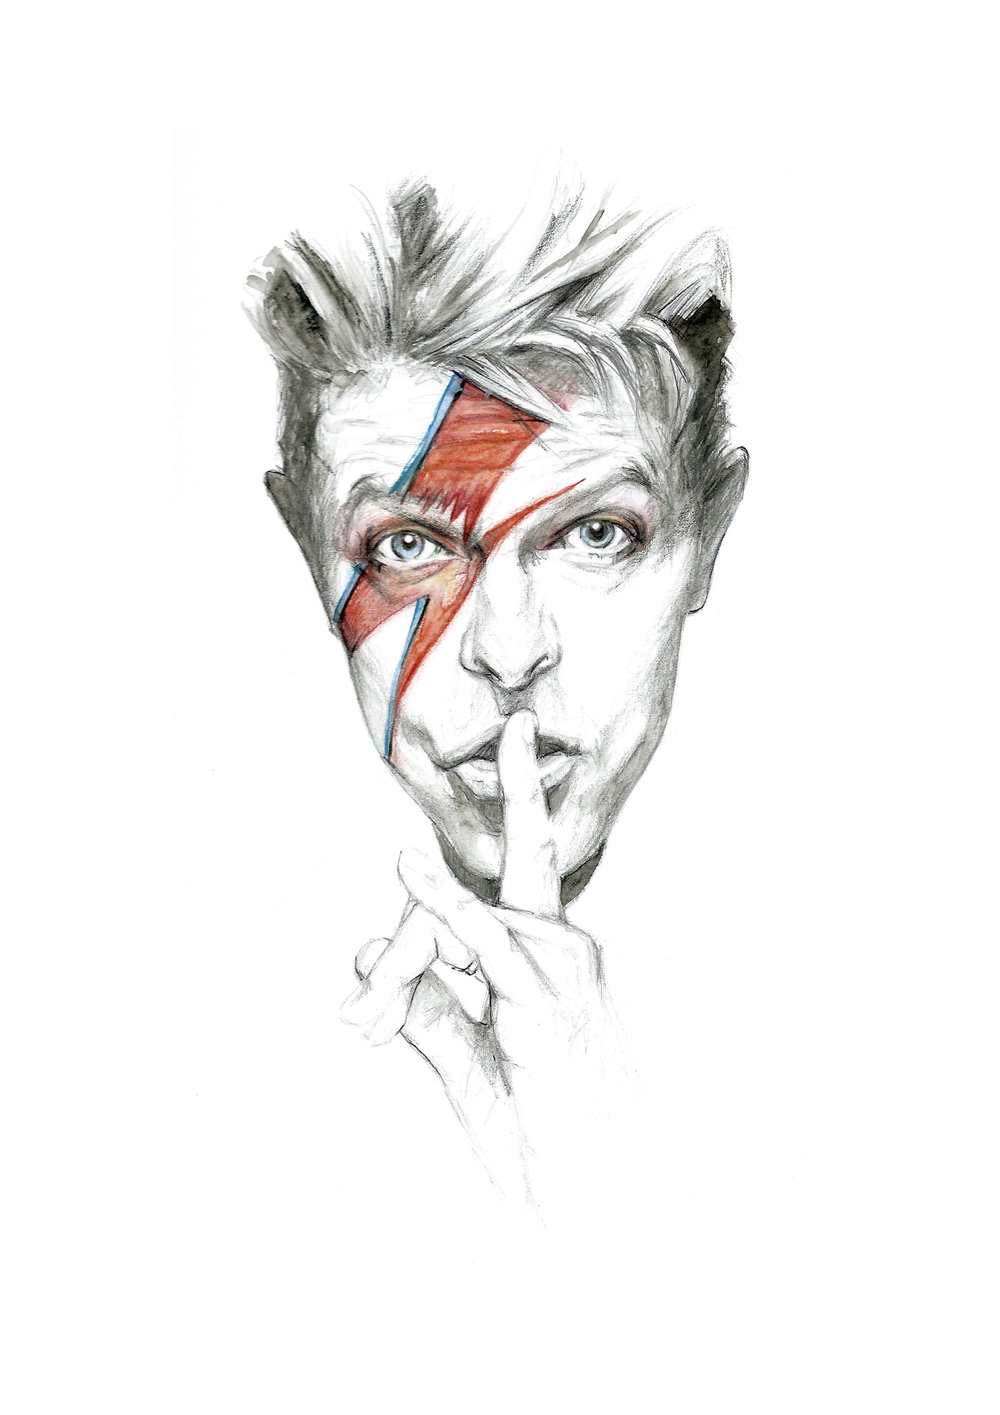 David Bowie - Original